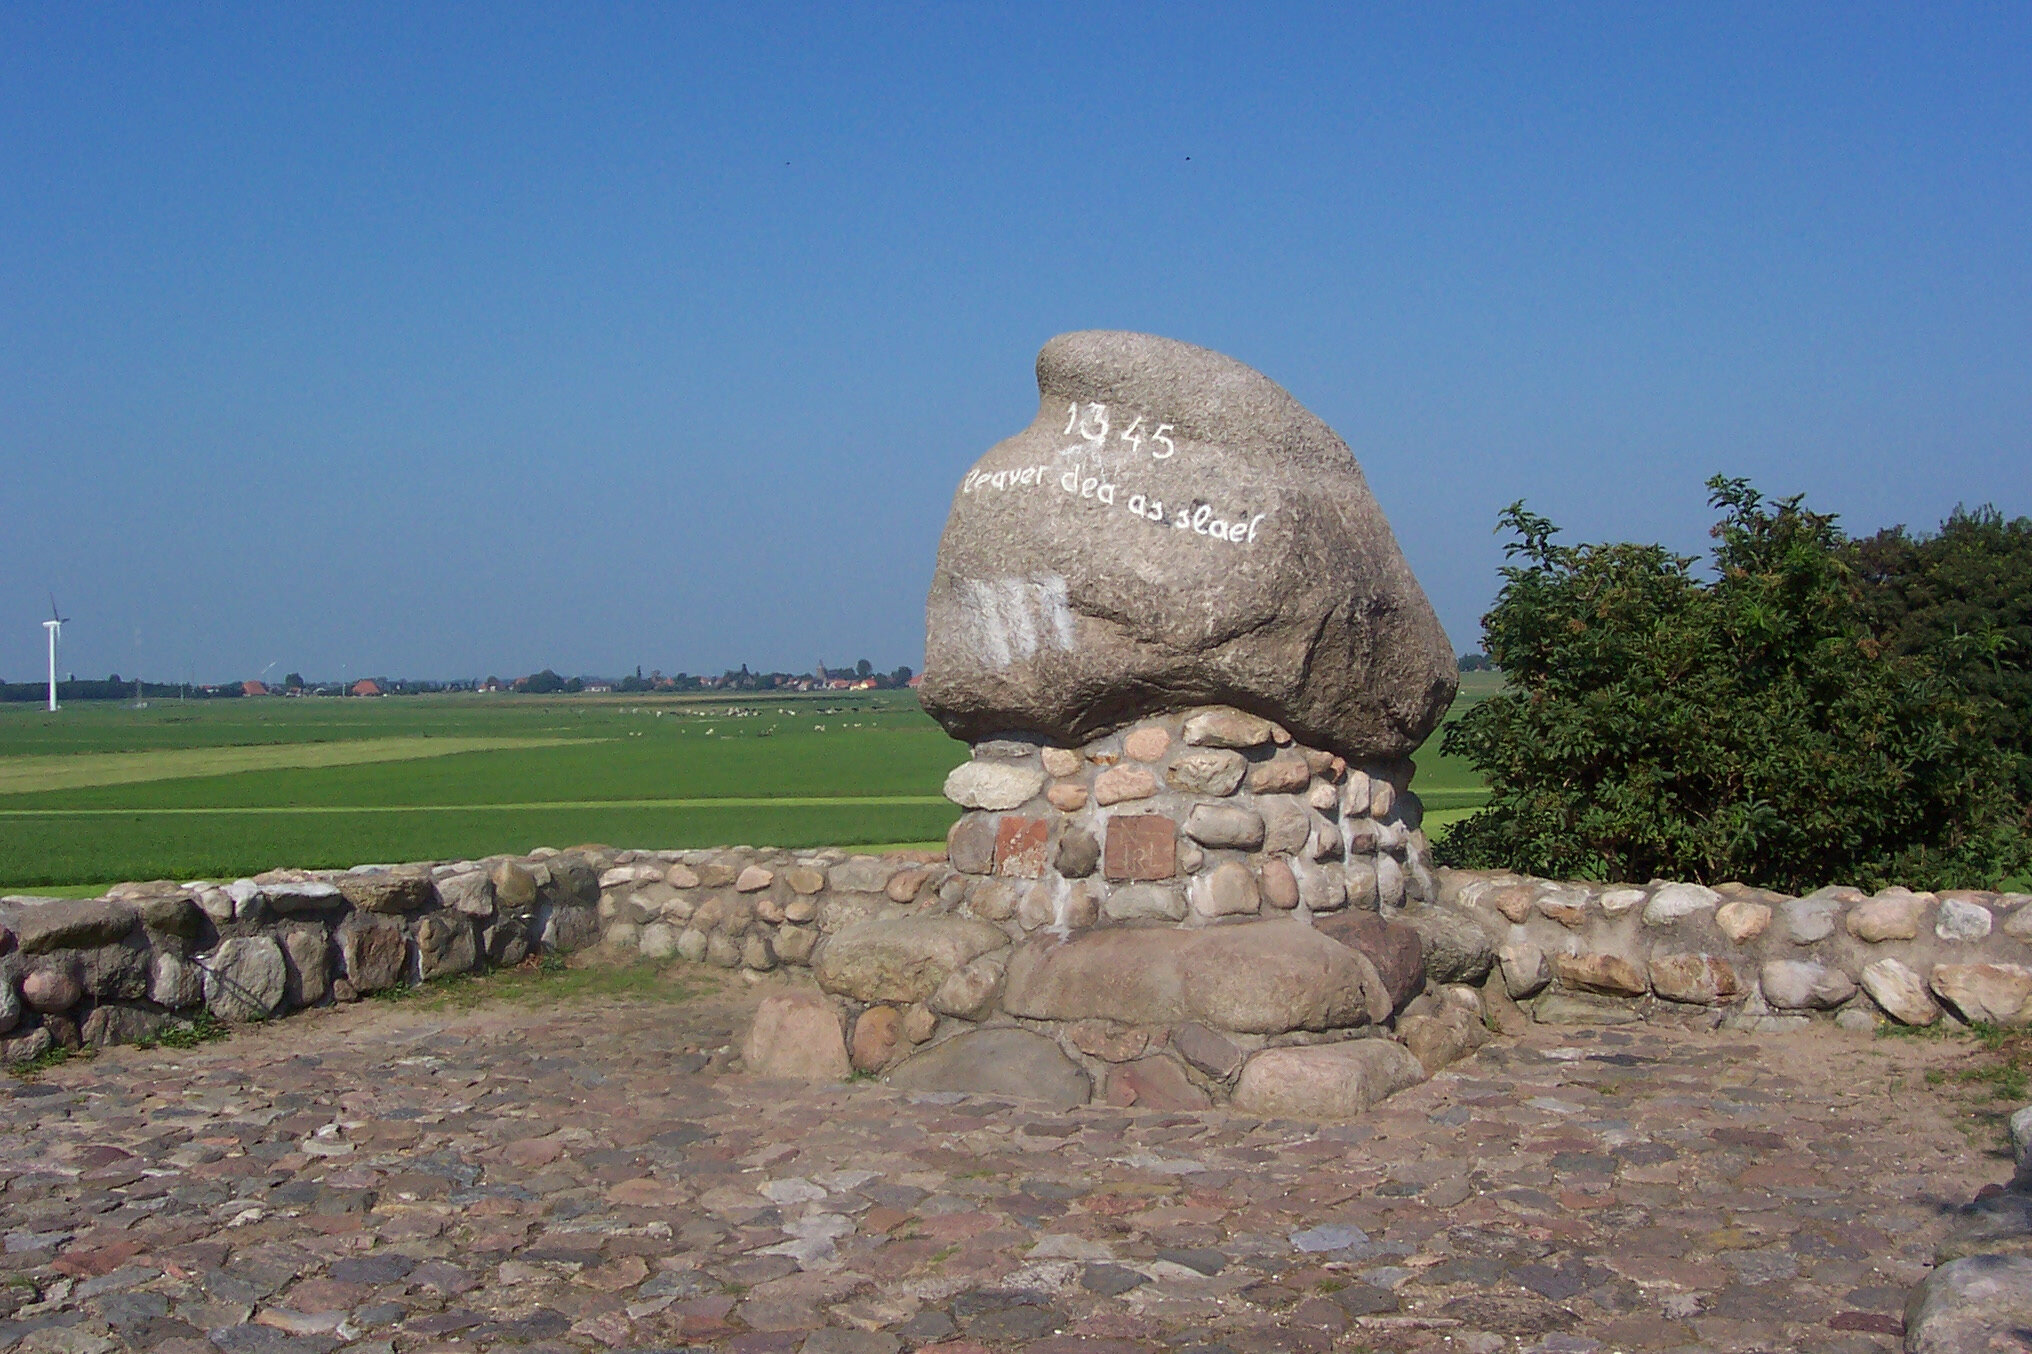 """Monument of the battle of Warns in Friesland. It says, in Frisian; """" Better to be dead than a slave """". By B. at fy.wikipedia, CC BY-SA 3.0,  https://commons.wikimedia.org/w/index.php?curid=9534344"""